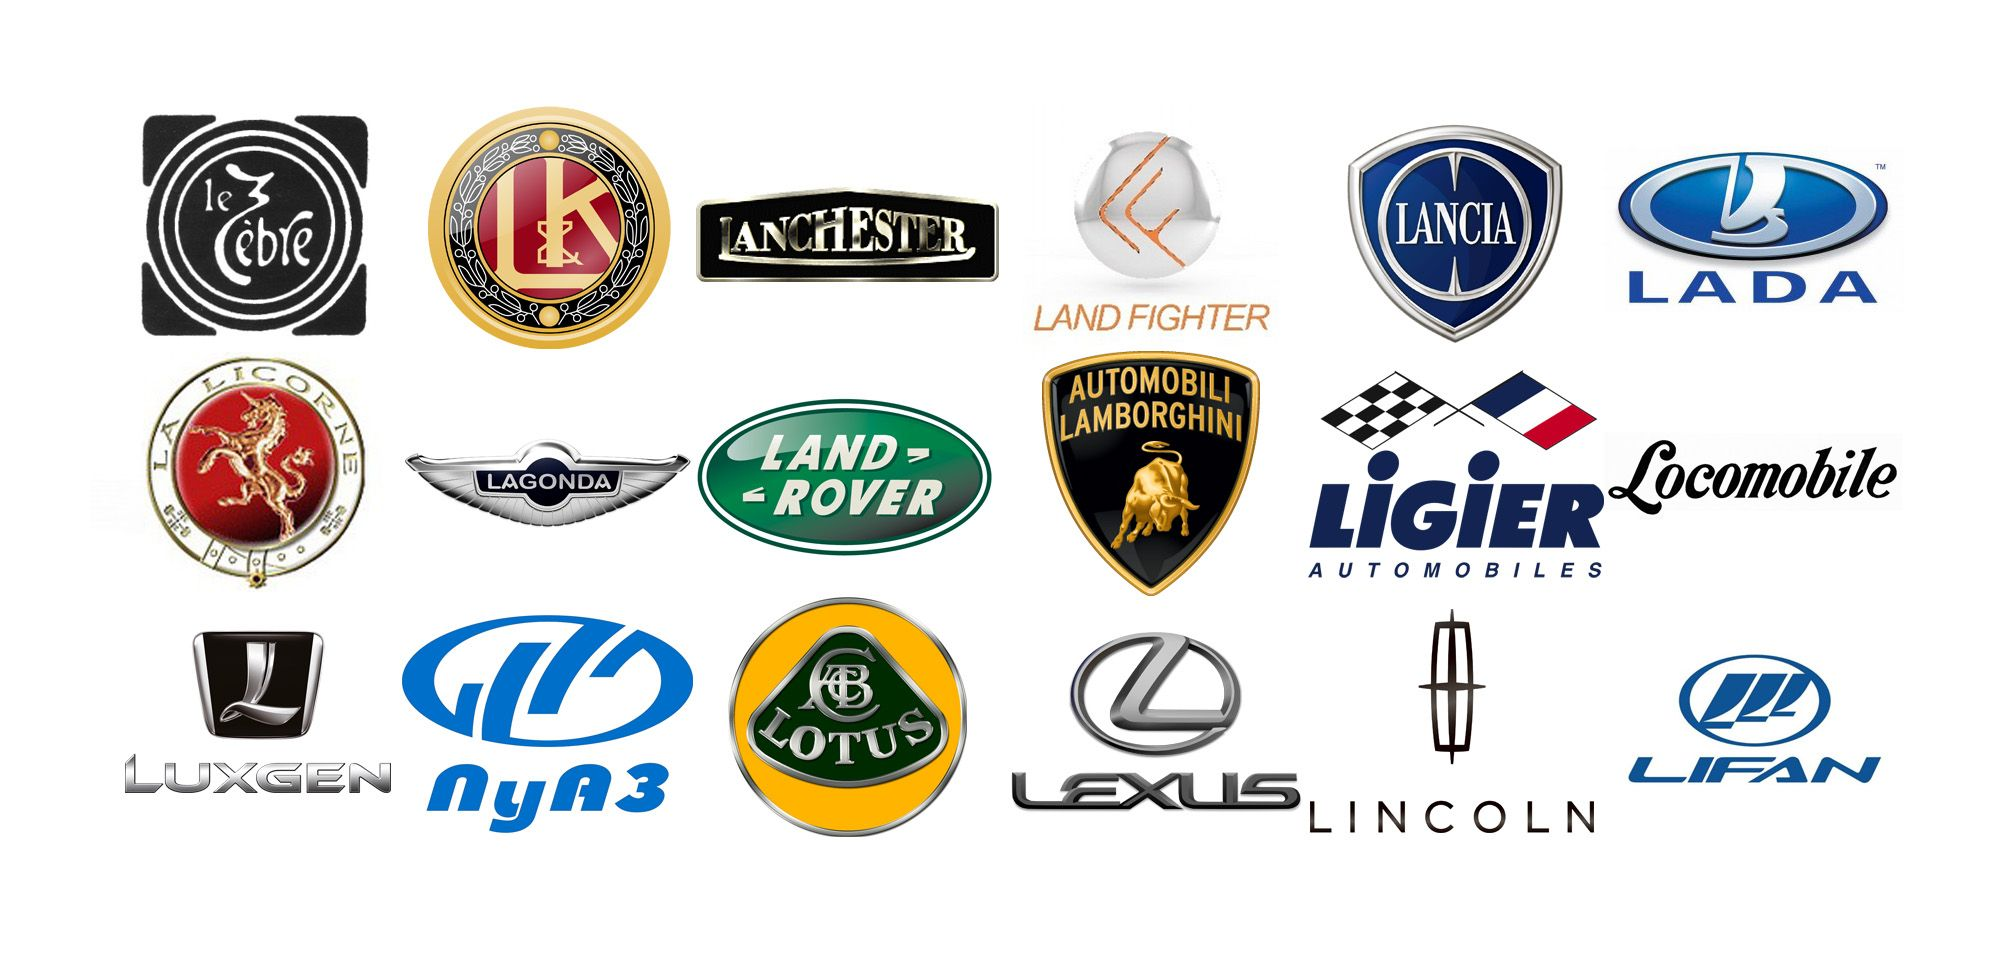 Car Brands Starting With L_492 Car brands, New and used